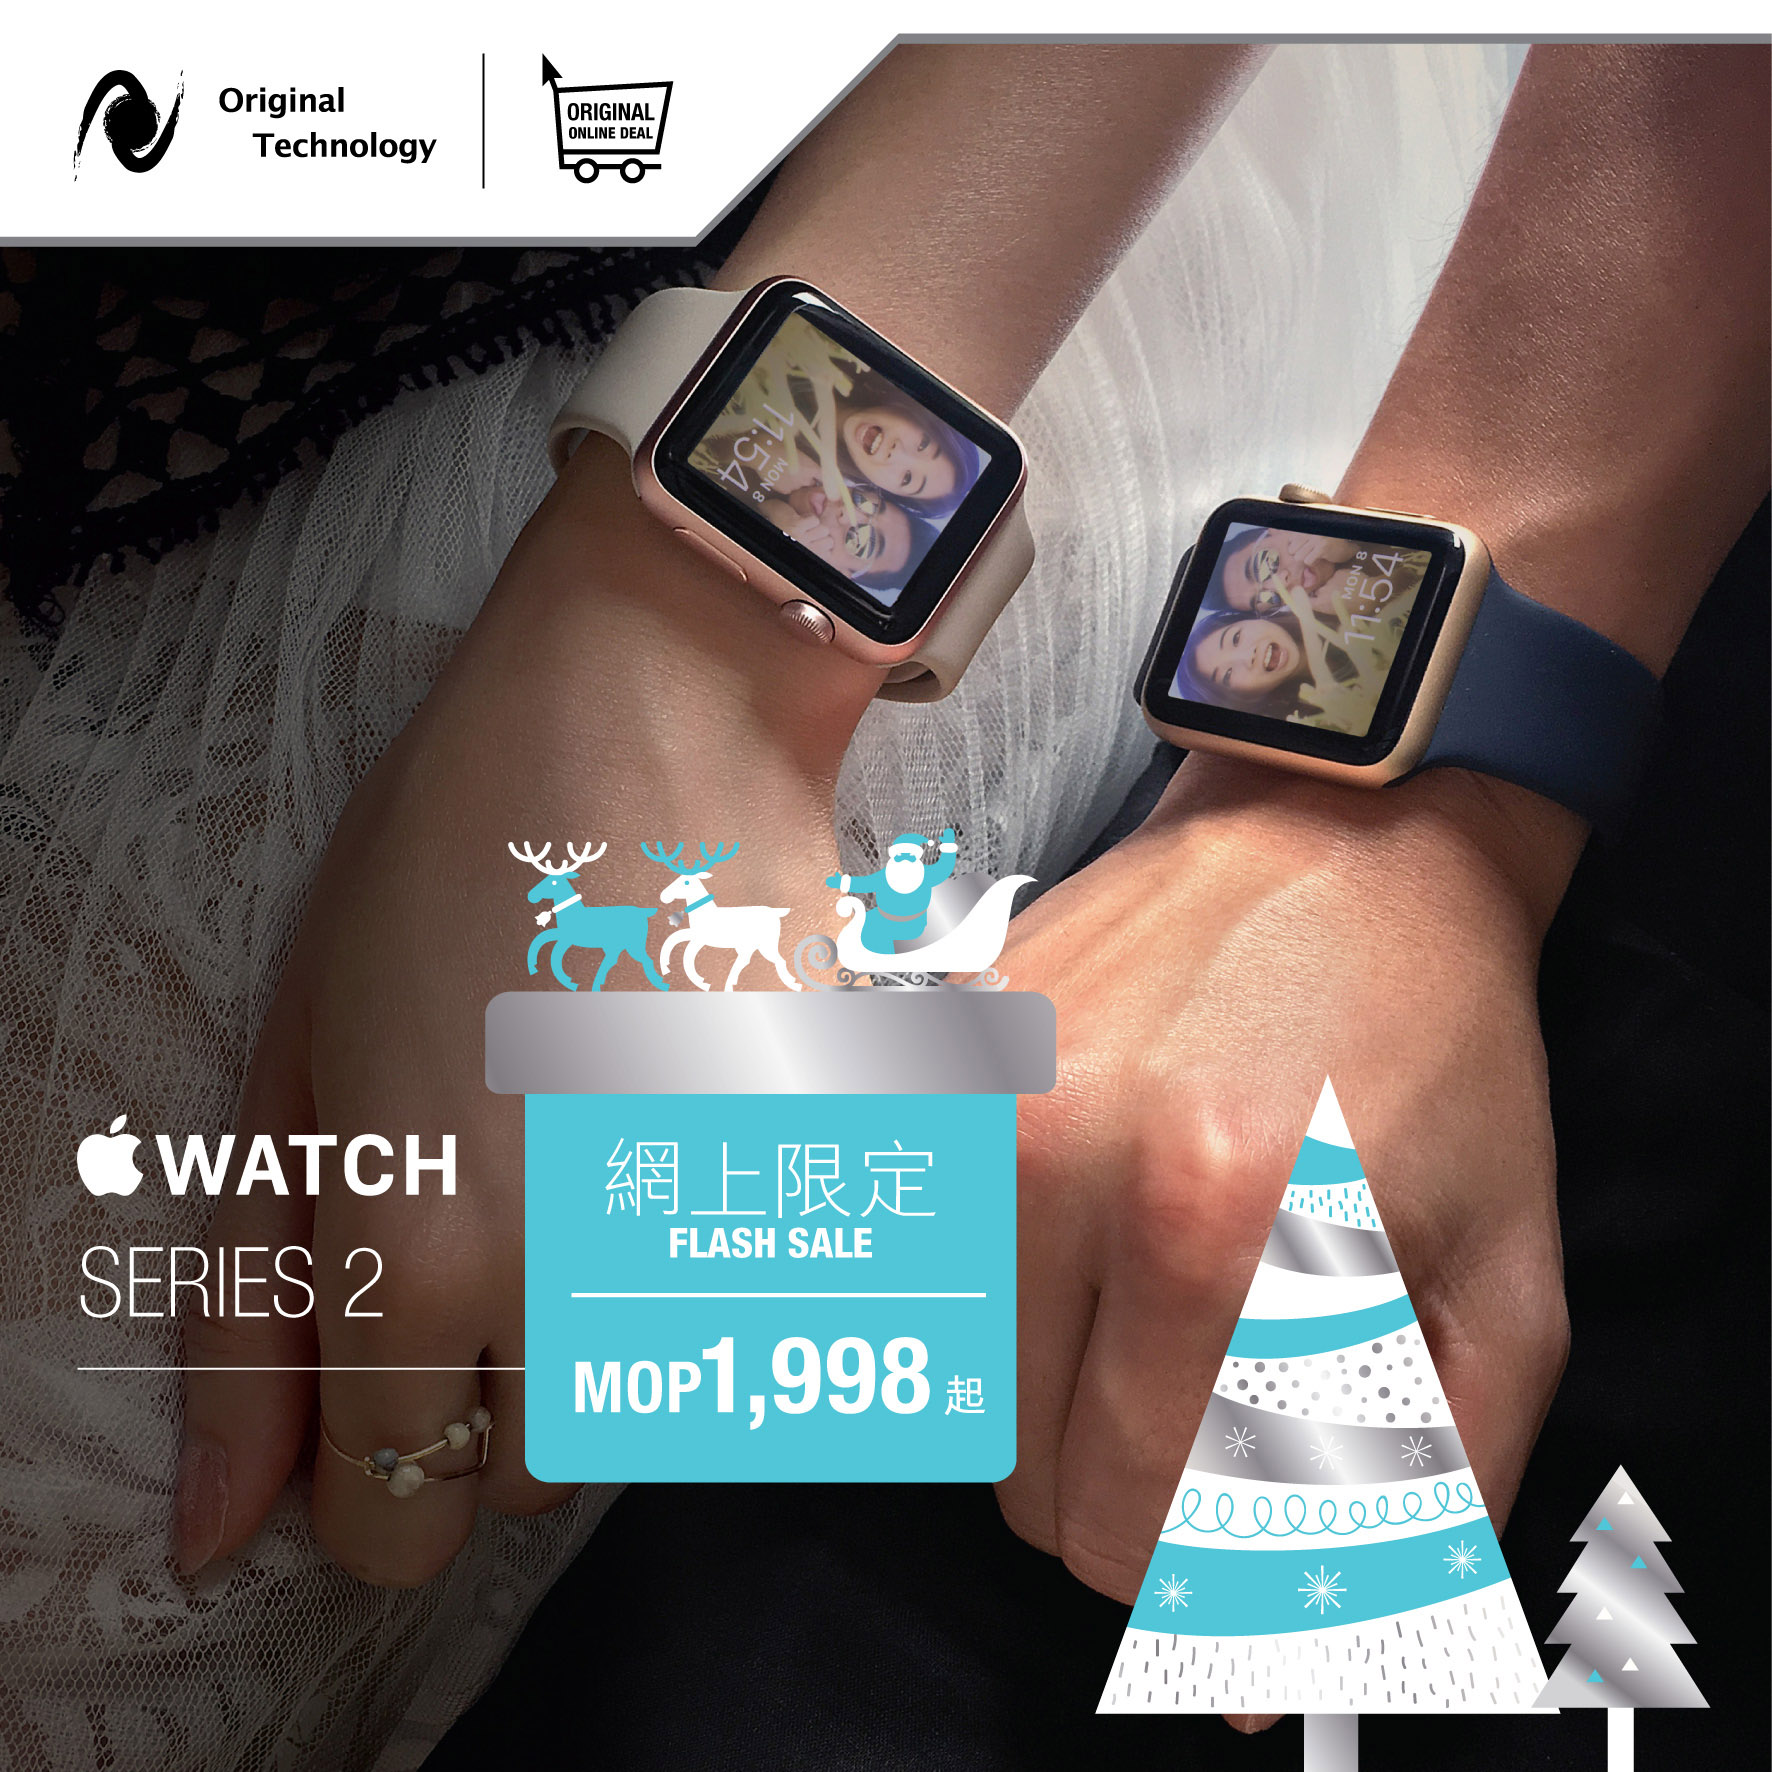 "【Flash Sale】 Apple Watch Series 2 - This time our offer on ""Original Online Deal"" is Apple Watch Series 2 at the flash price from MOP1,998*, order here and get up to MOP990 off!"